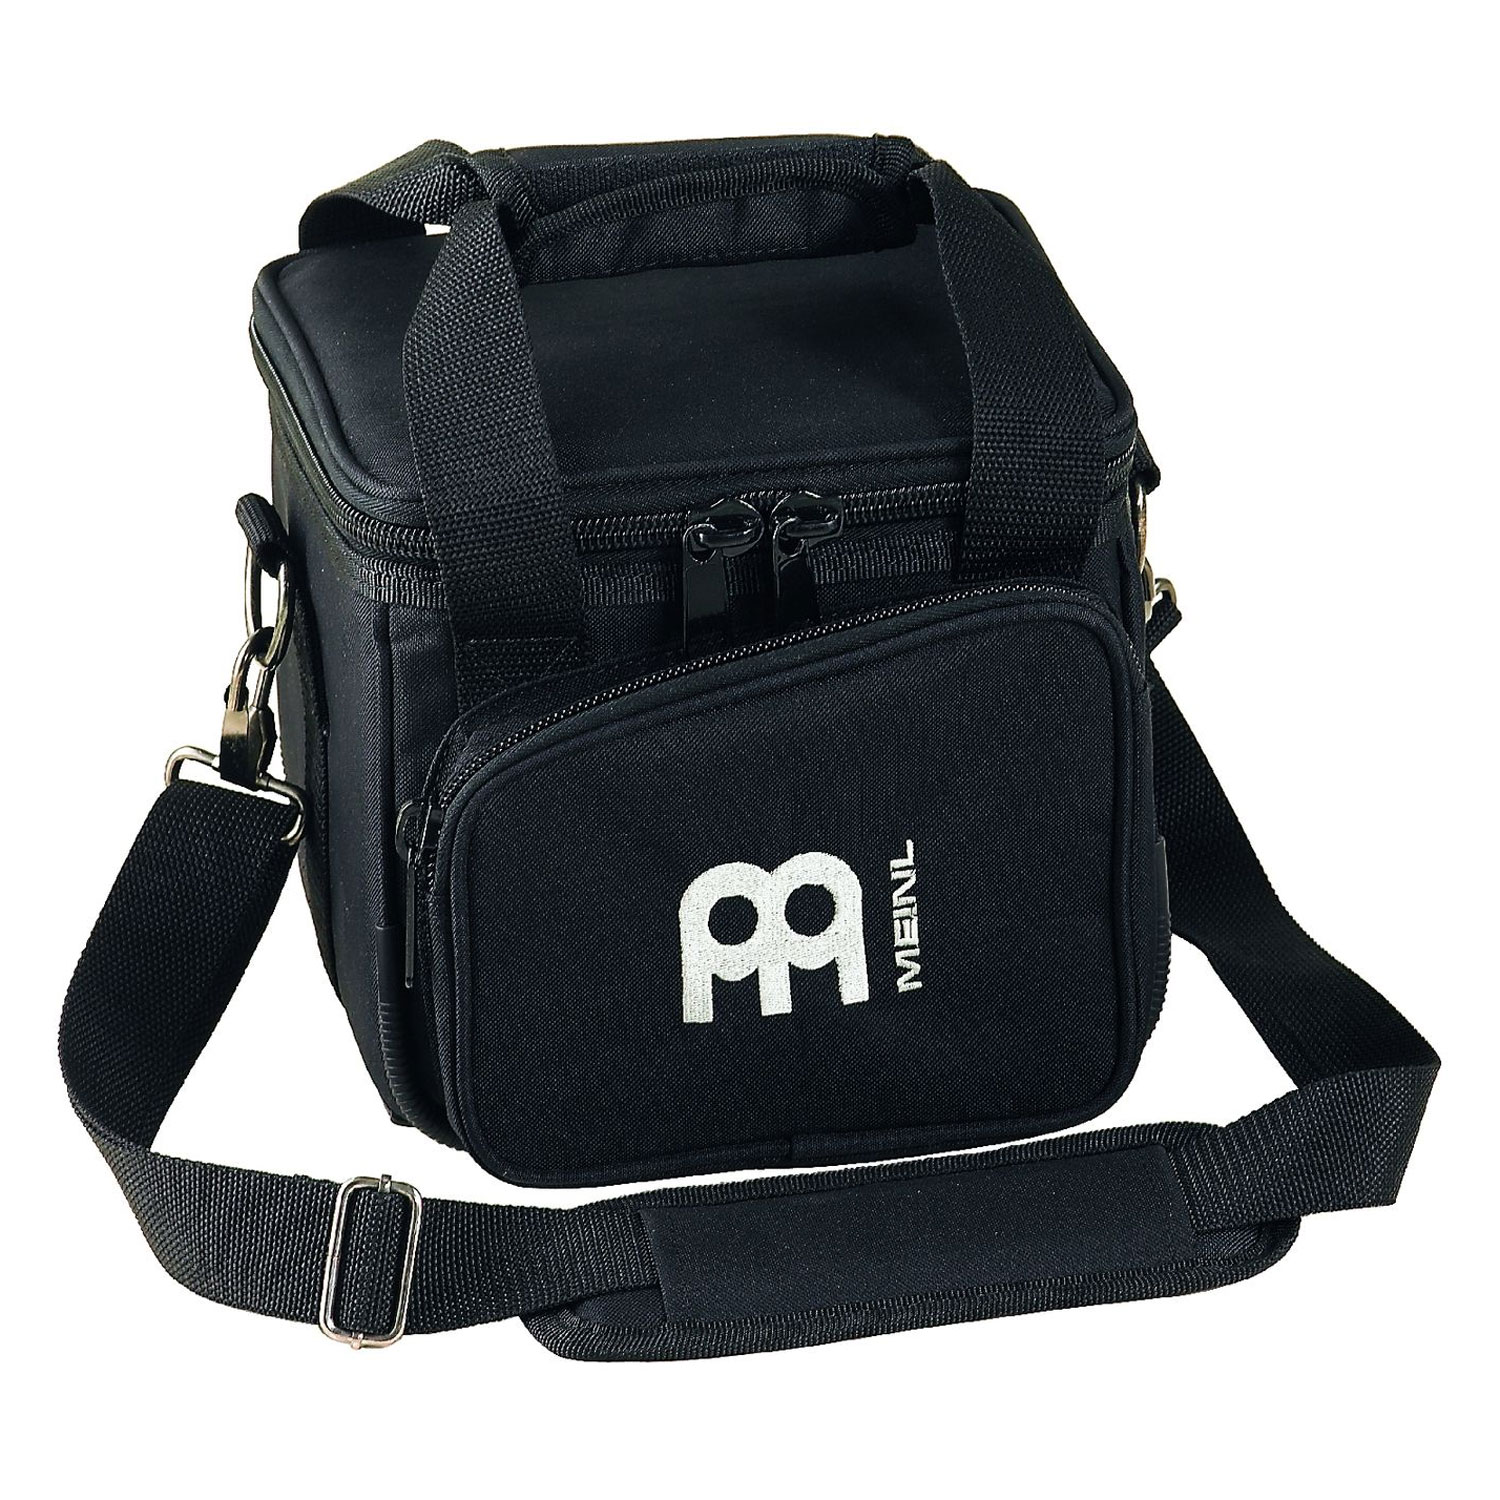 "Meinl 10"" (Diameter) Professional Cuica Bag"